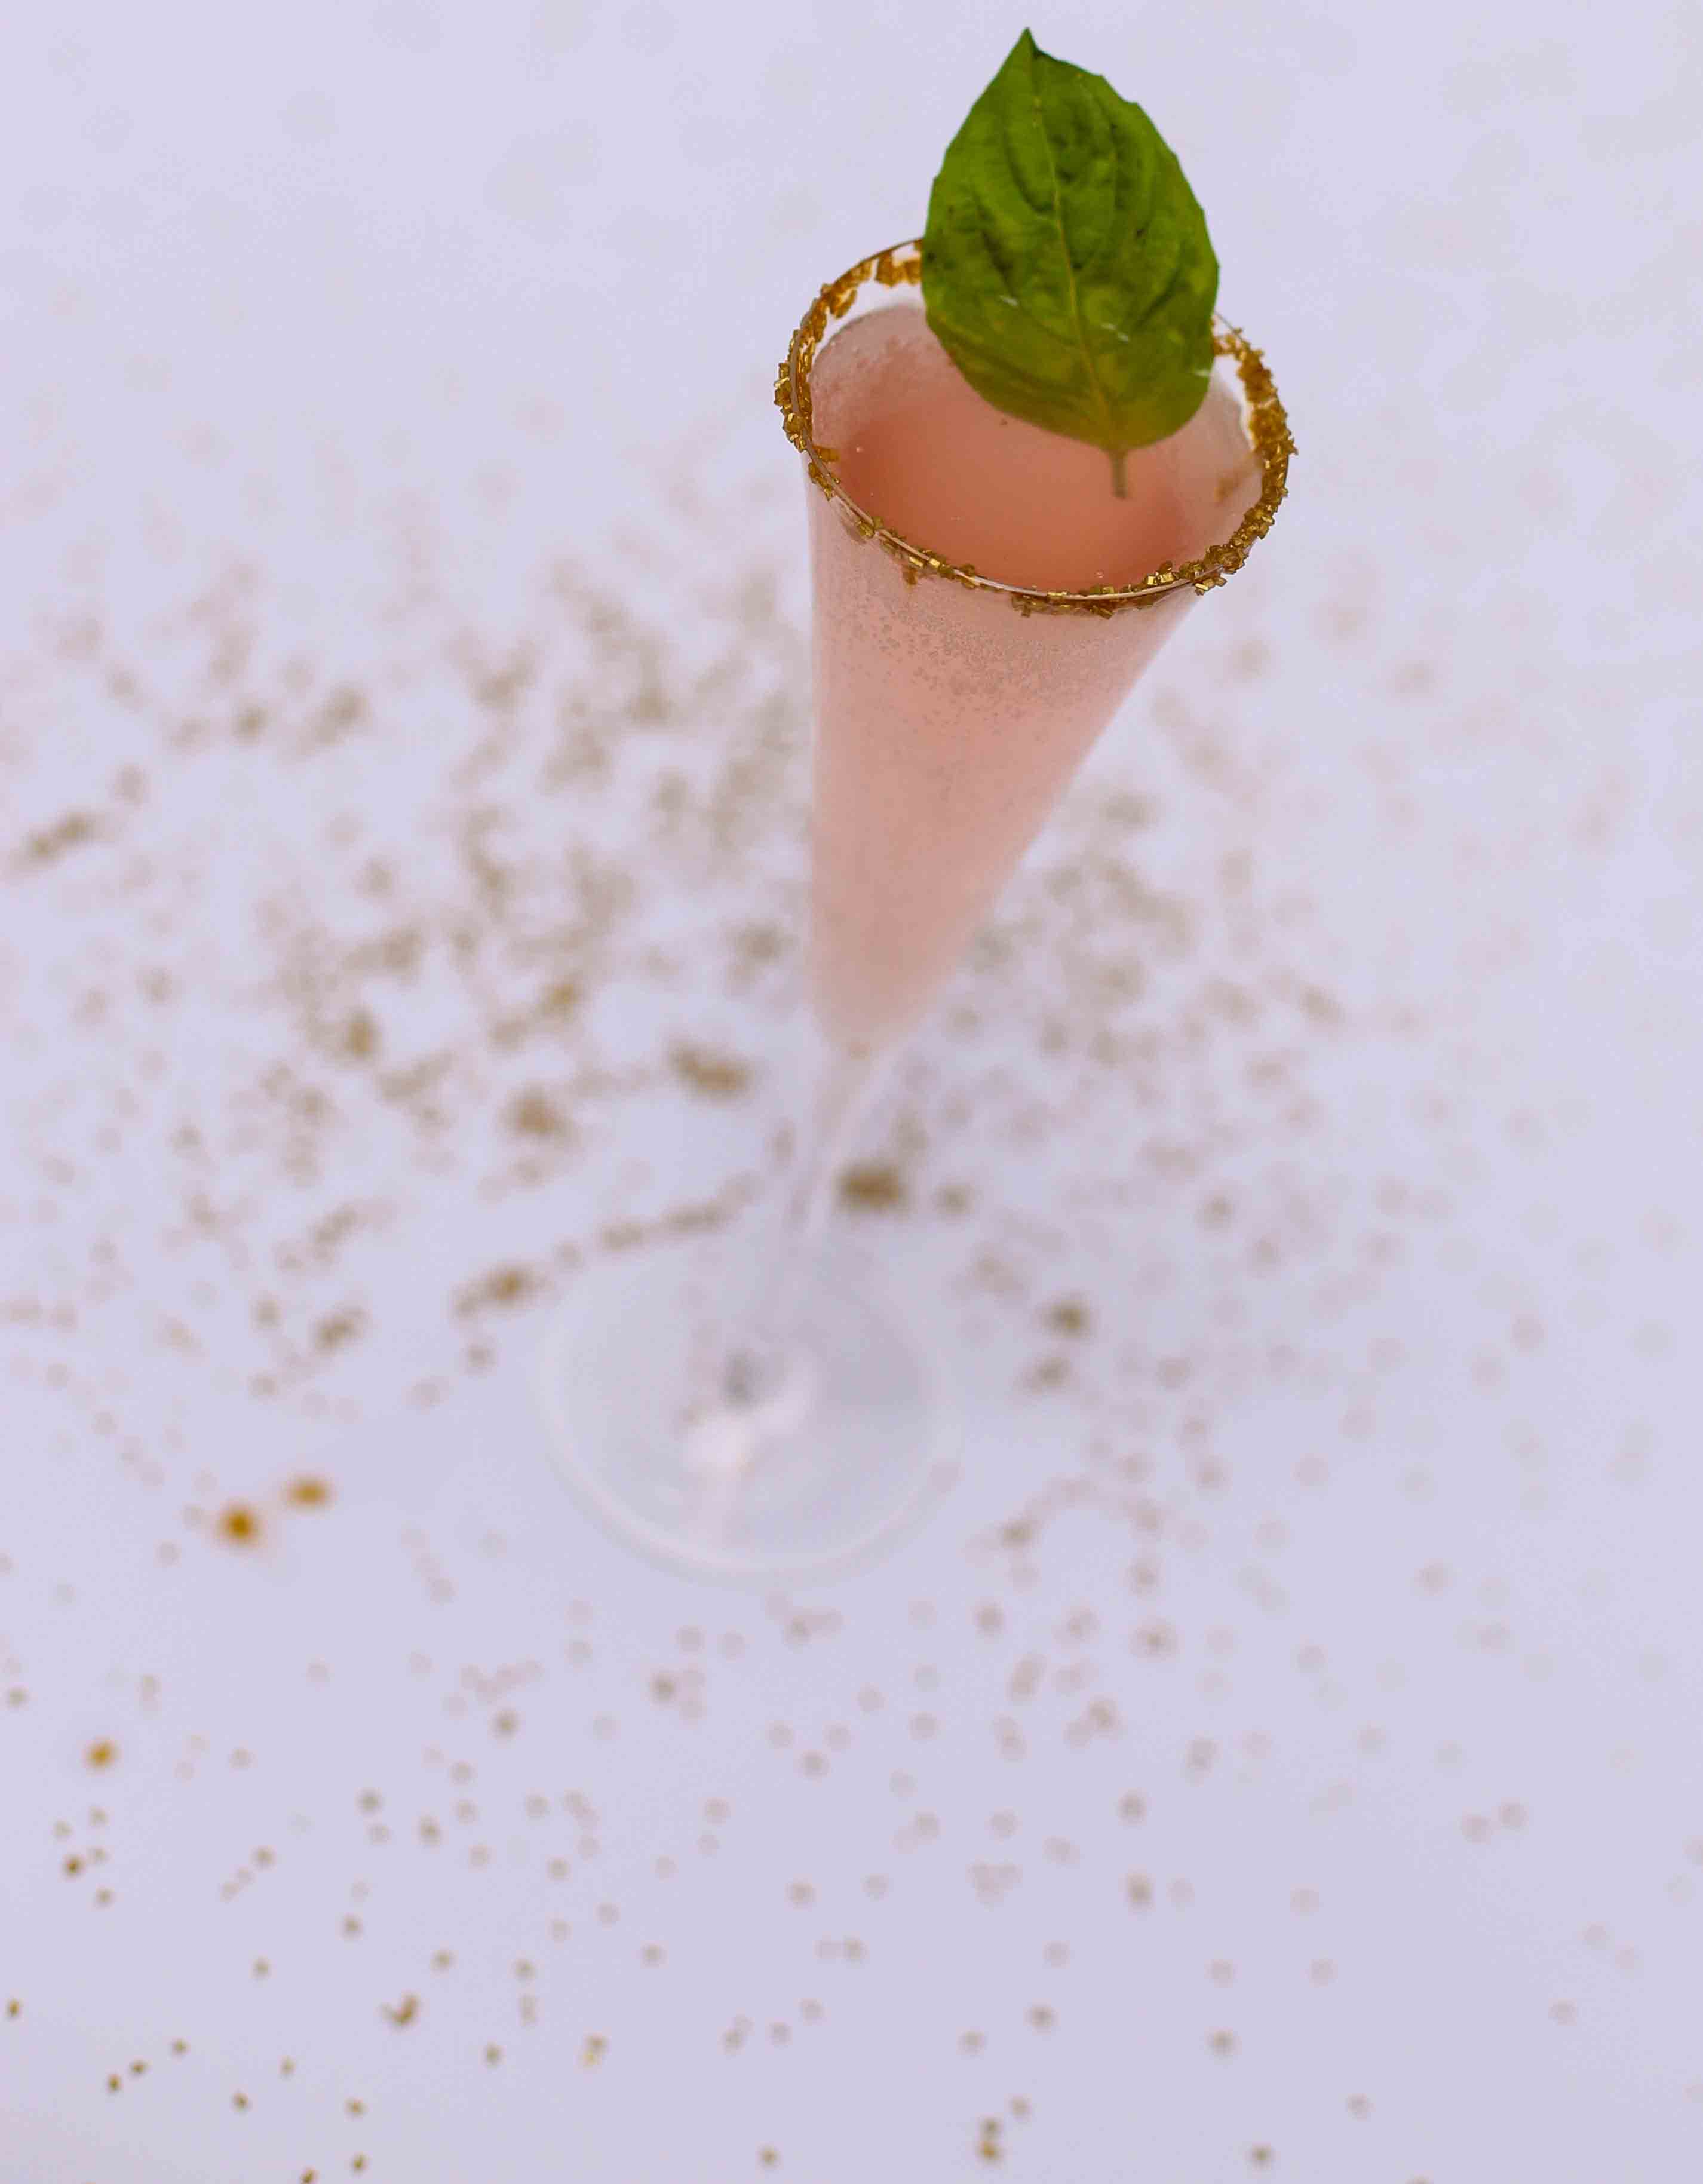 Watermelon Basil Sparklers - Holiday Beverages: Watermelon Basil Sparklers by Atlanta lifestyle blogger Happily Hughes